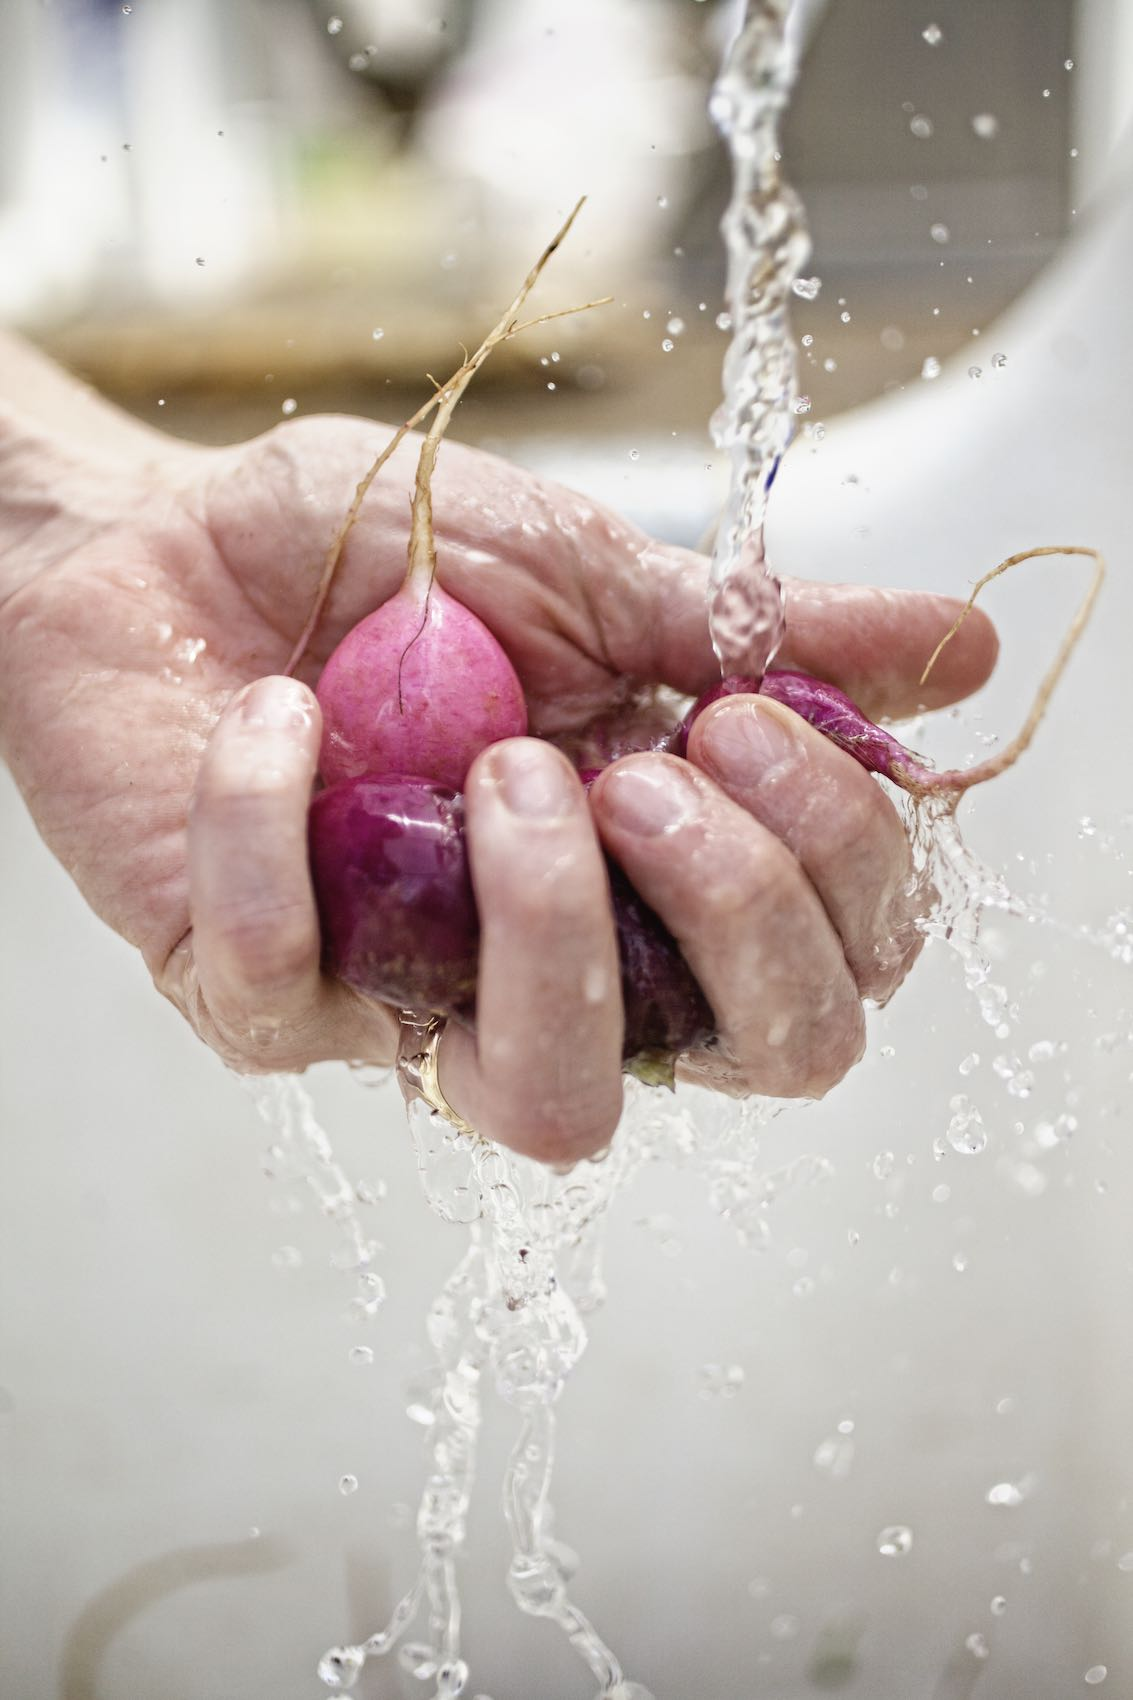 Jody Horton Photography - Hand washing radishes under water.